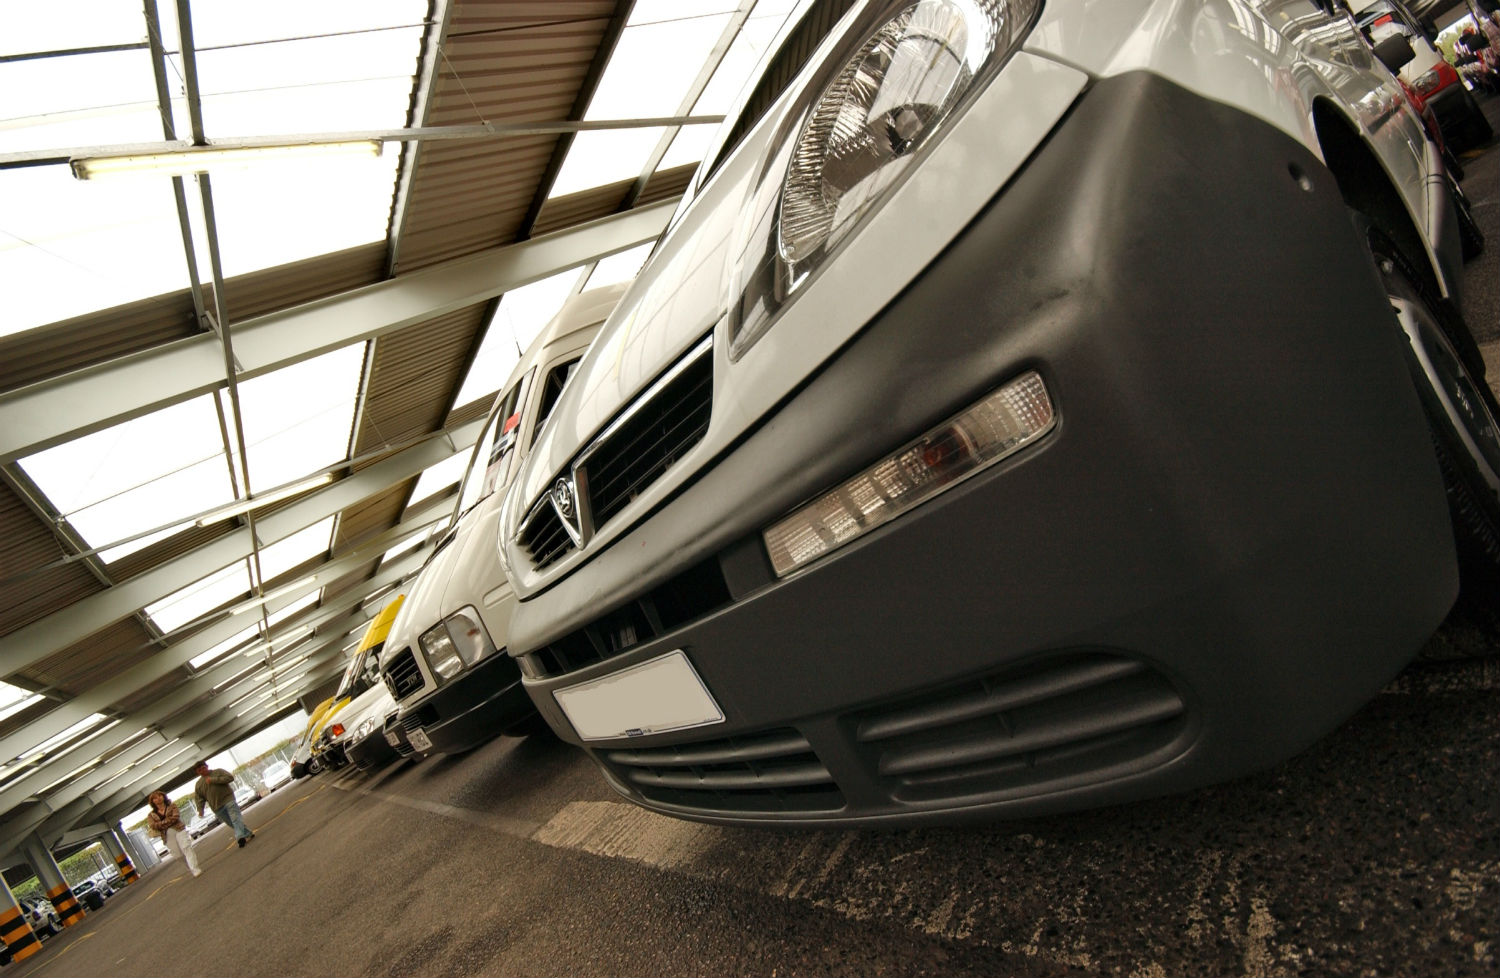 Commercial vehicles at Manheim auctions